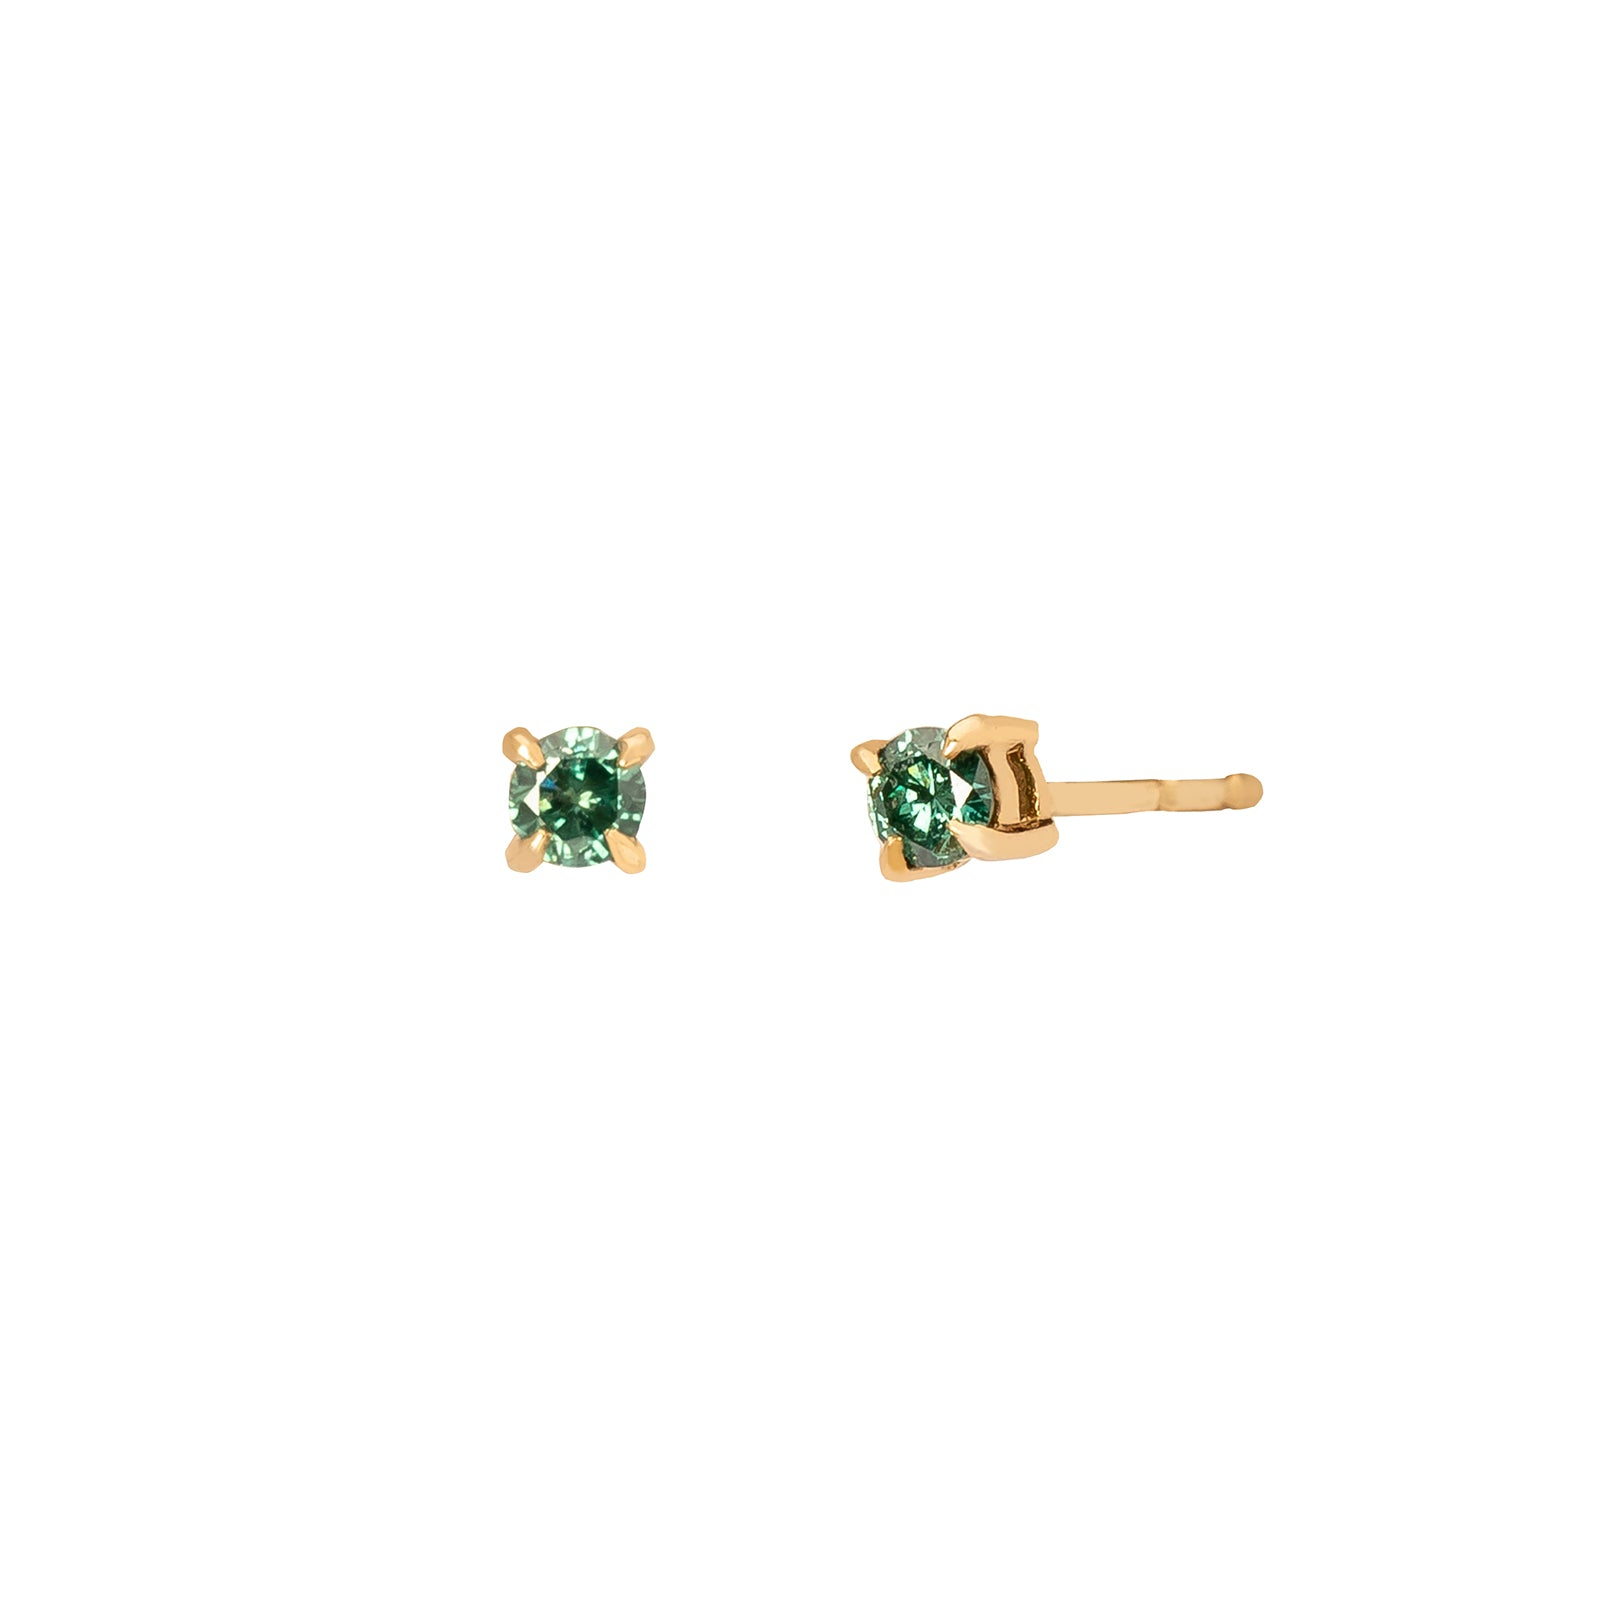 YI Collection Green Diamond Studs - Earrings - Broken English Jewelry